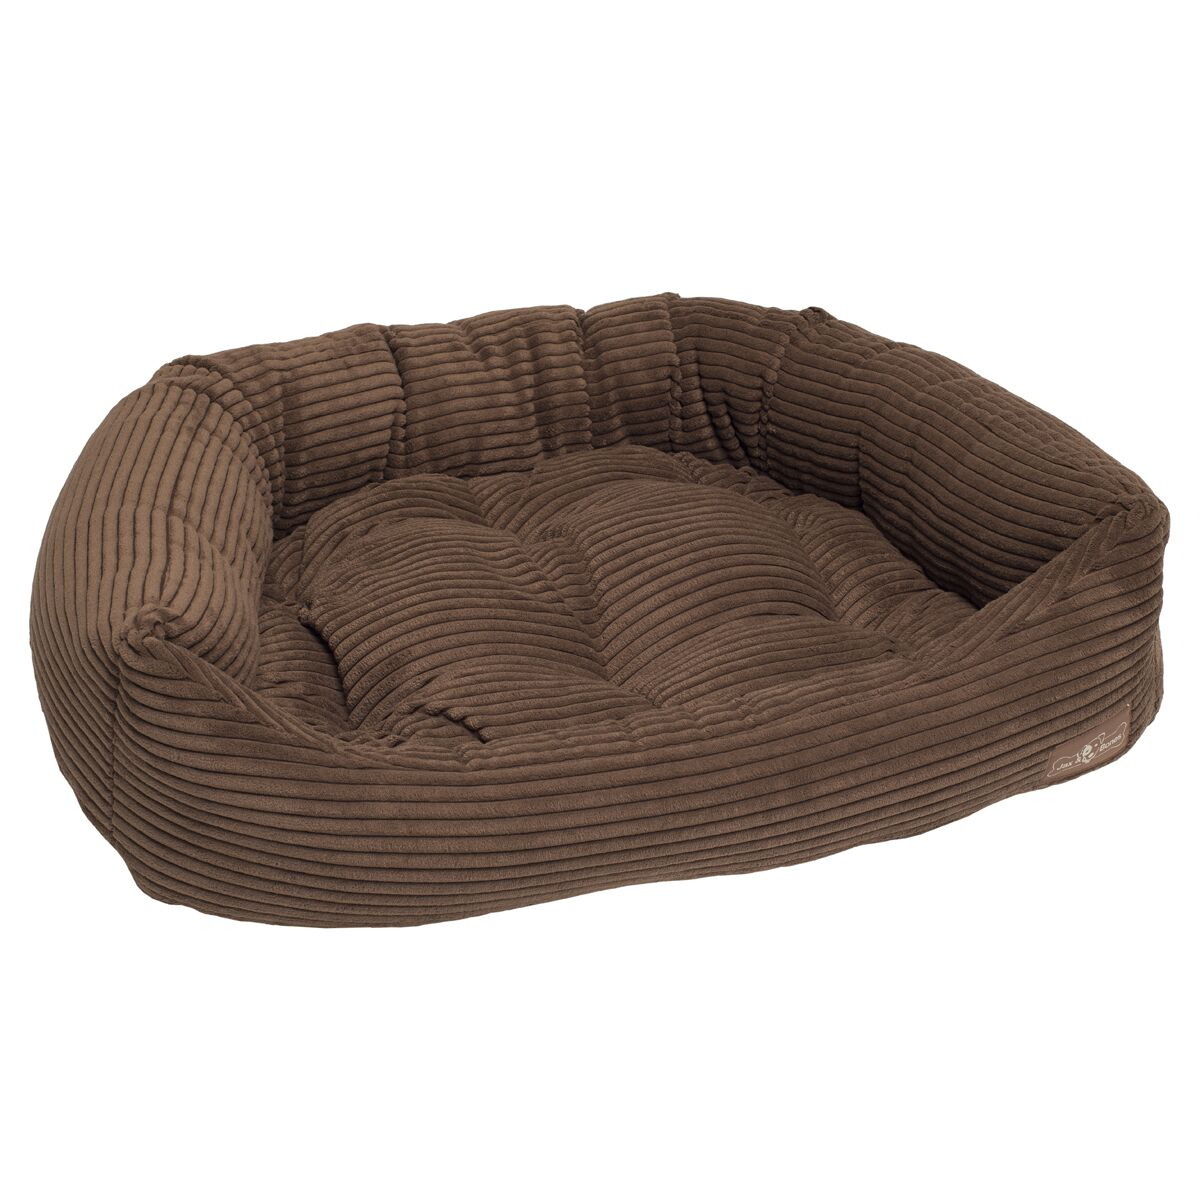 Corduroy Napper Bed Bolster Size: Extra Large - 42